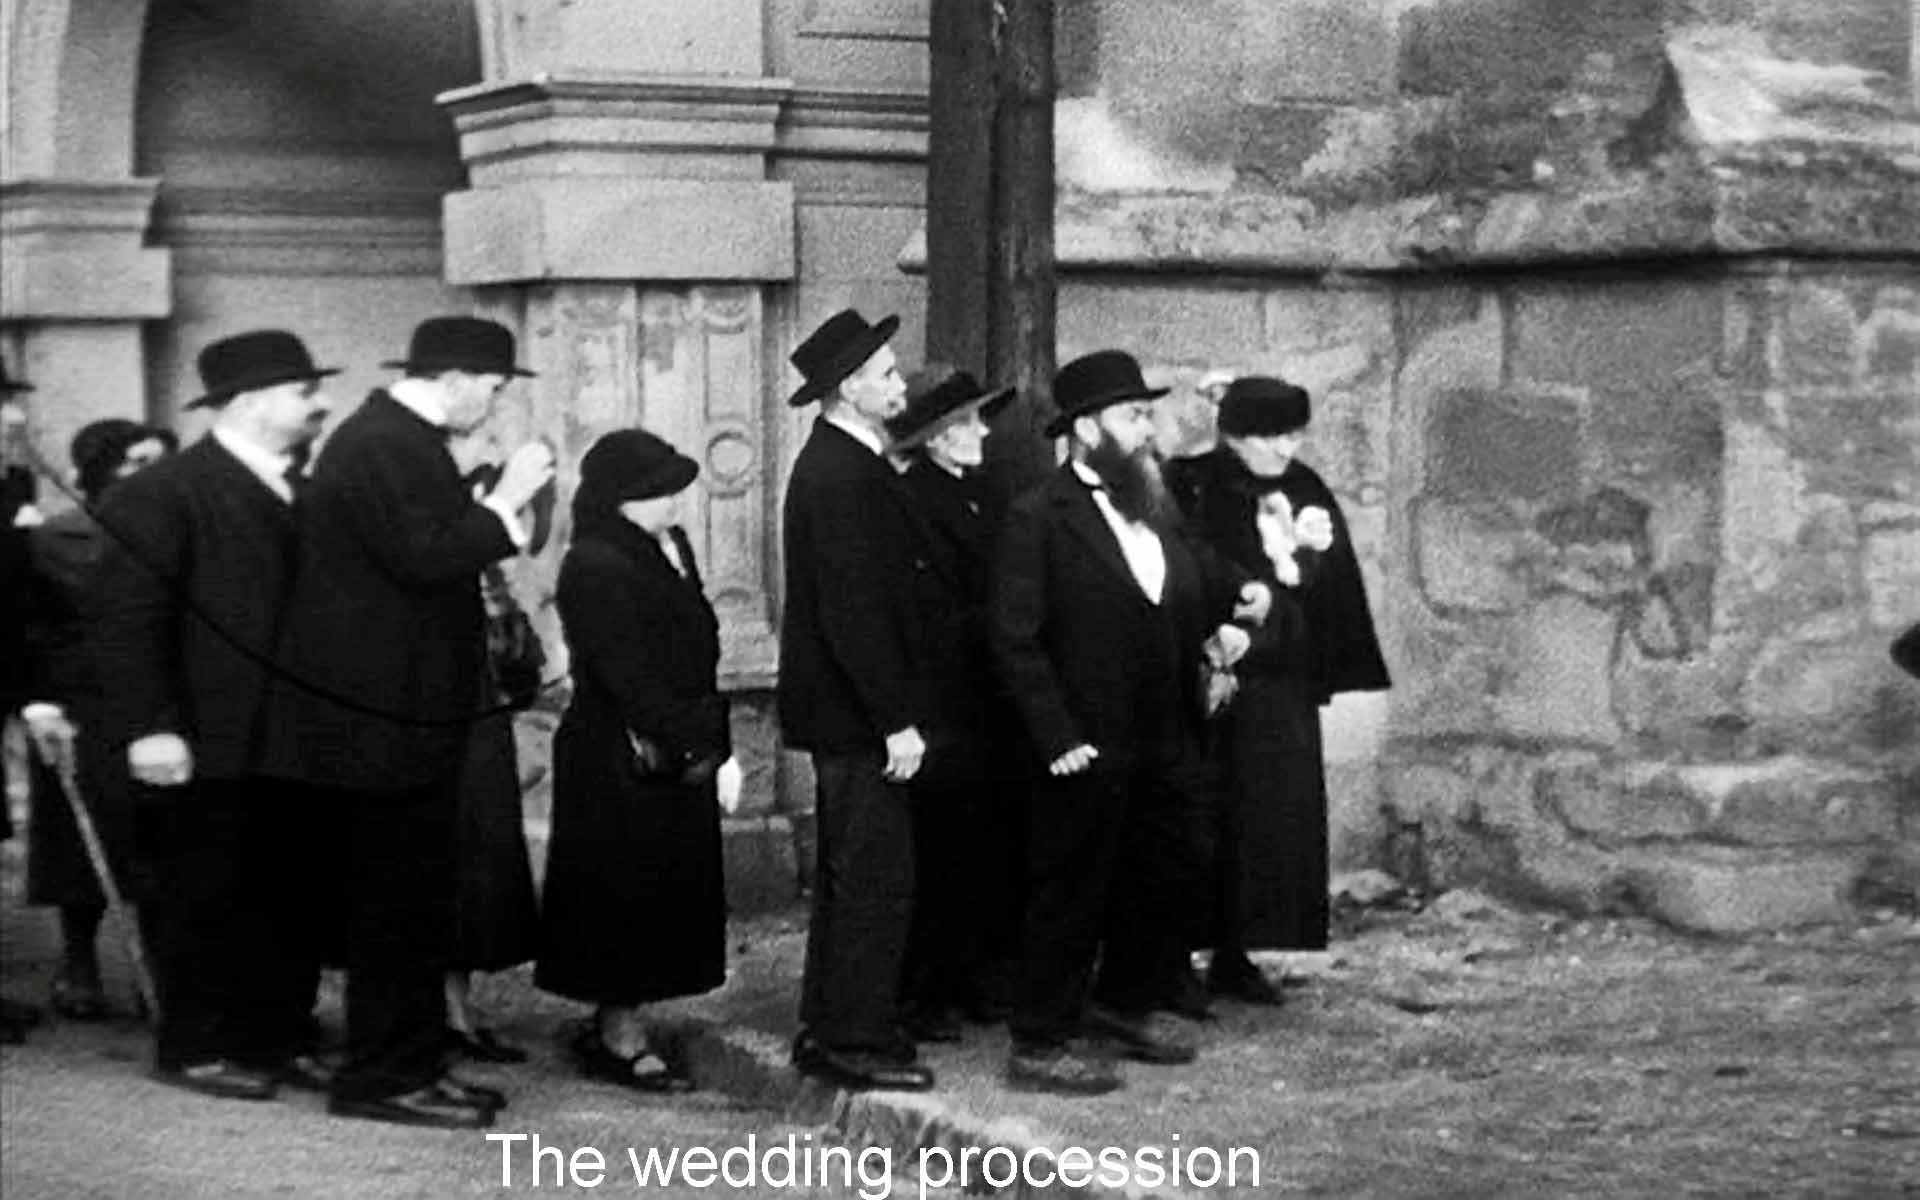 The wedding procession